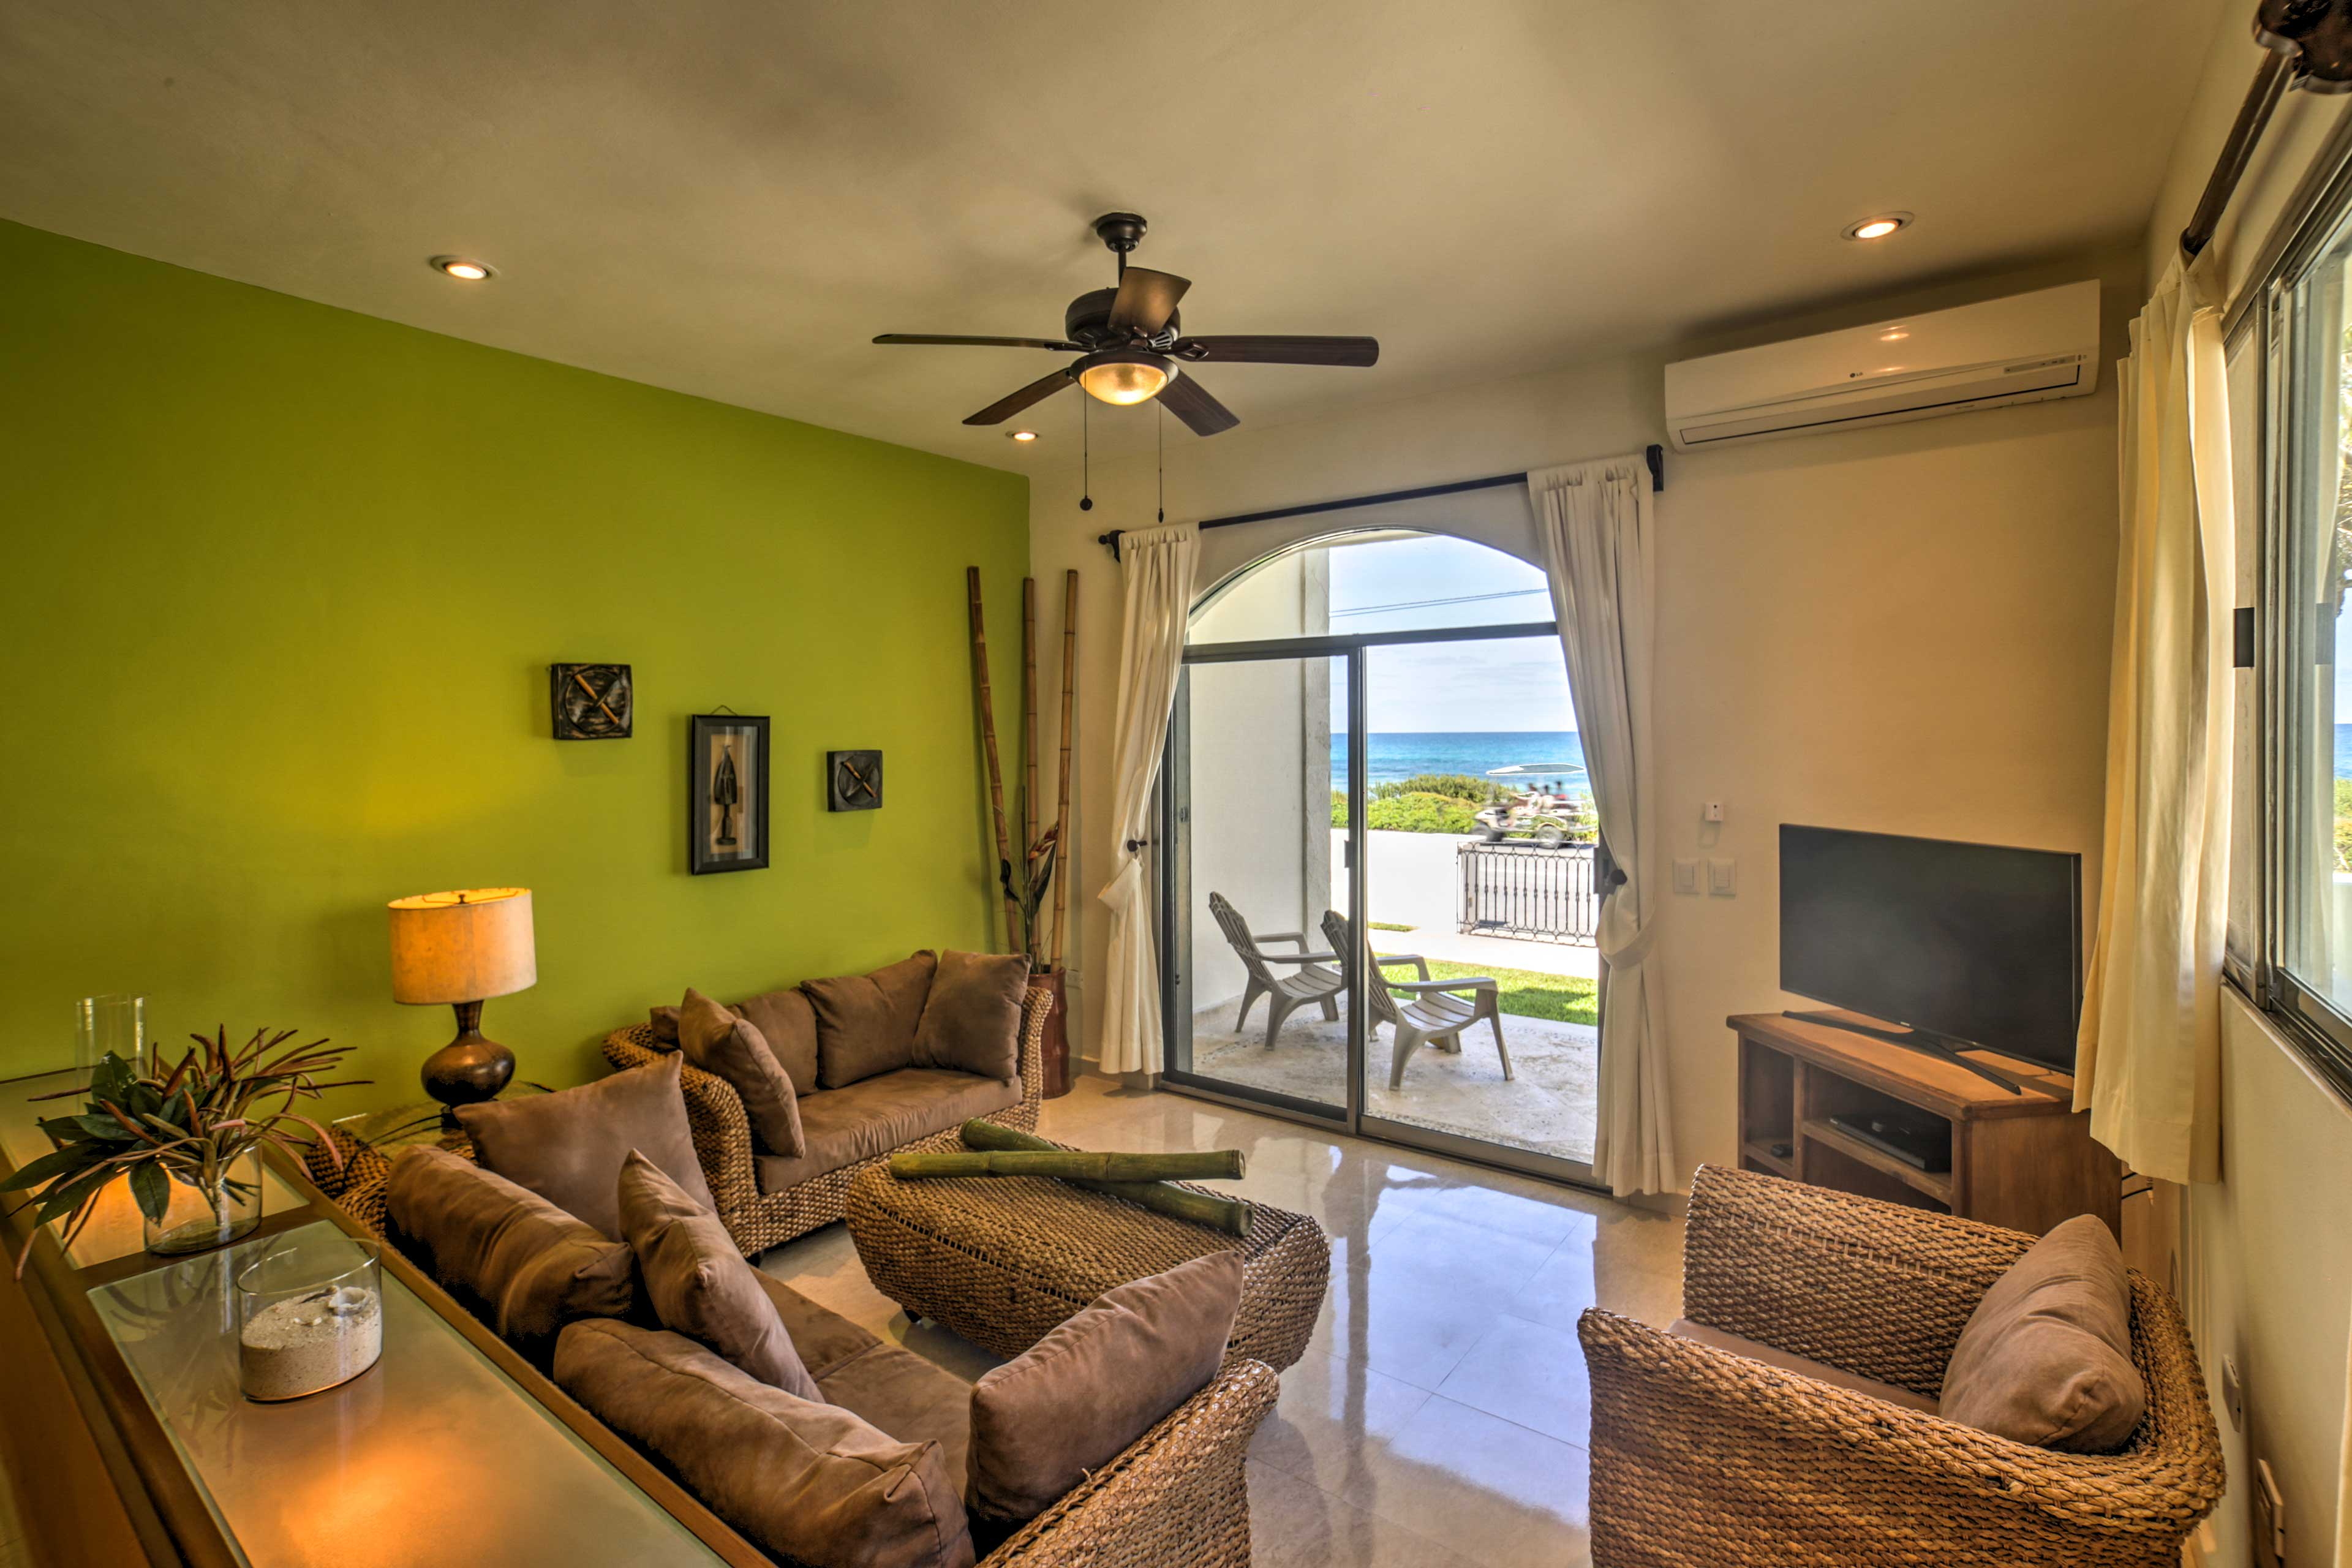 The estate has a total of 4 flat-screen Smart TVs.